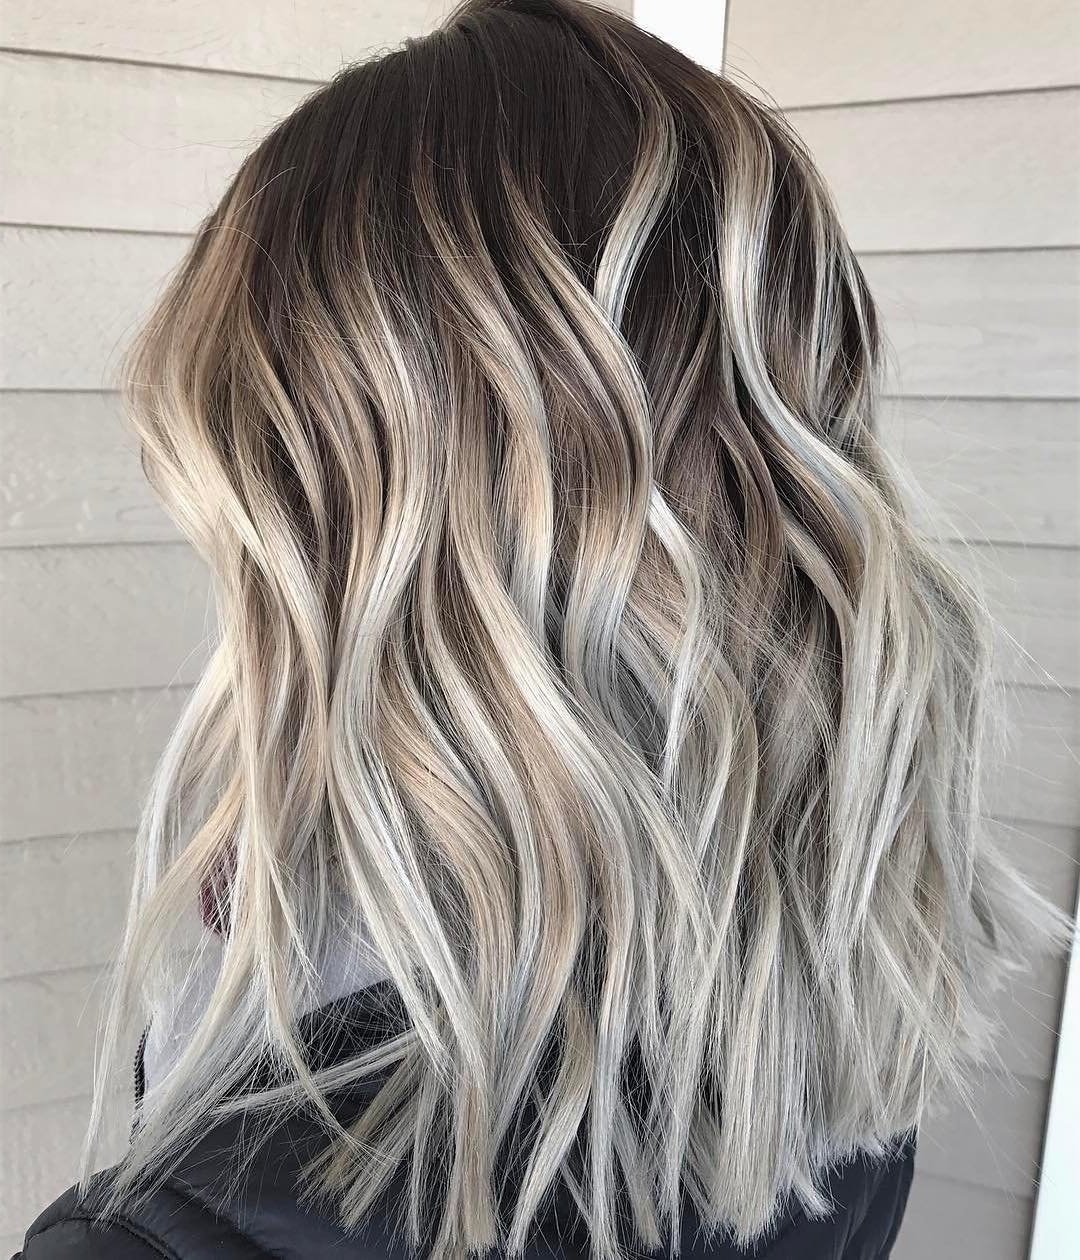 Latest Shoulder Length Ombre Blonde Hairstyles Within 10 Best Medium Hairstyles For Women – Shoulder Length Hair Cuts  (View 9 of 20)